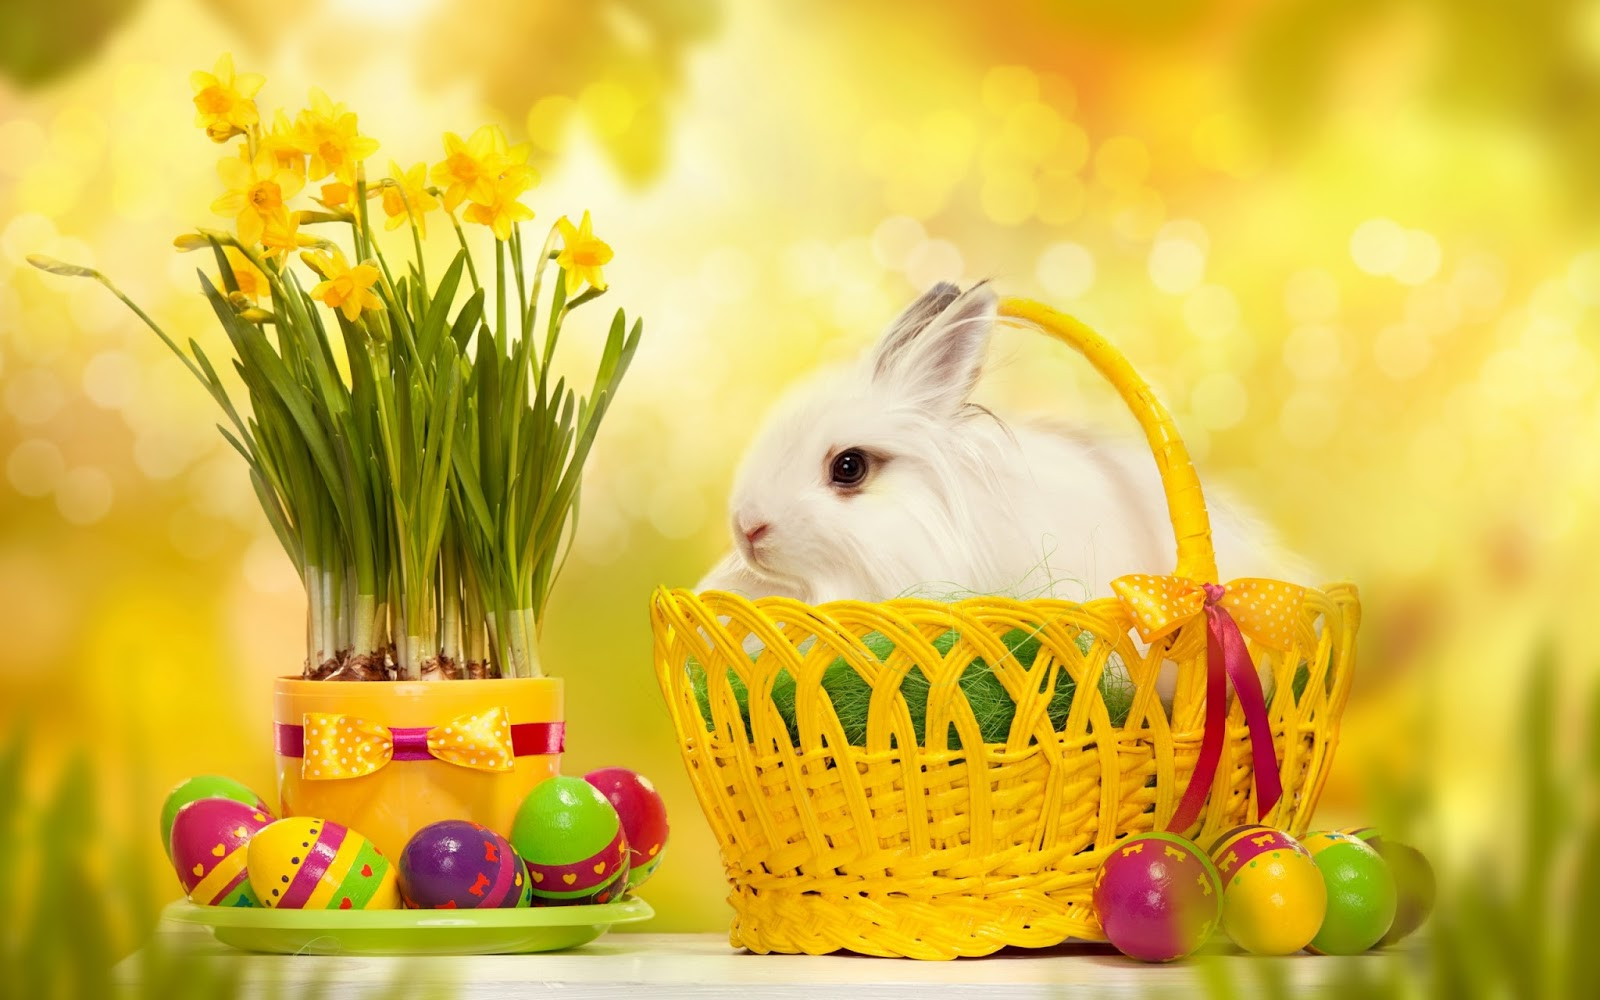 happy easter images 2017 u2013 images for wishing happy easter 2017